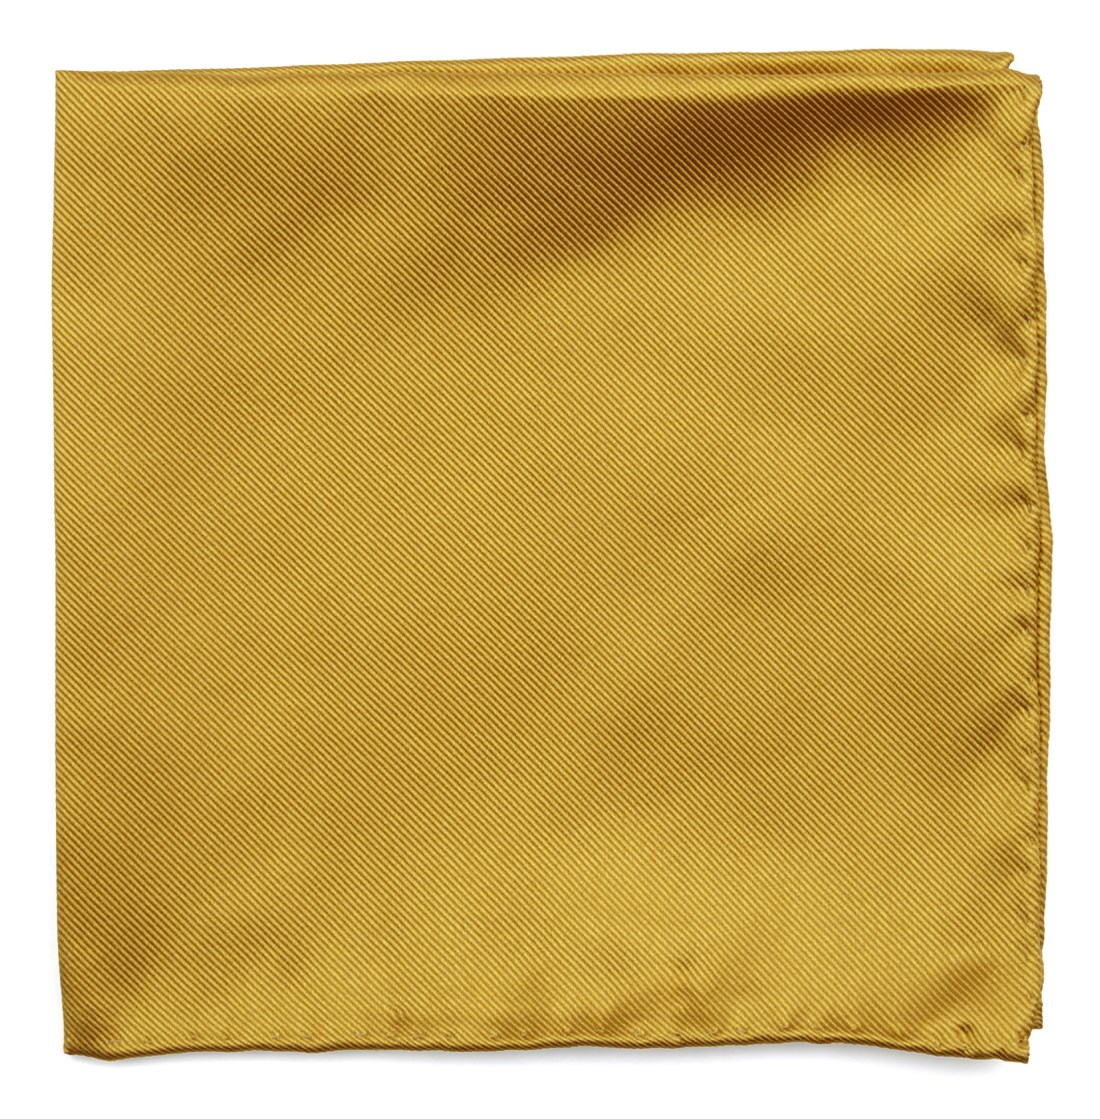 Edwardian Men's Accessories Solid Twill Pocket Square $10.00 AT vintagedancer.com